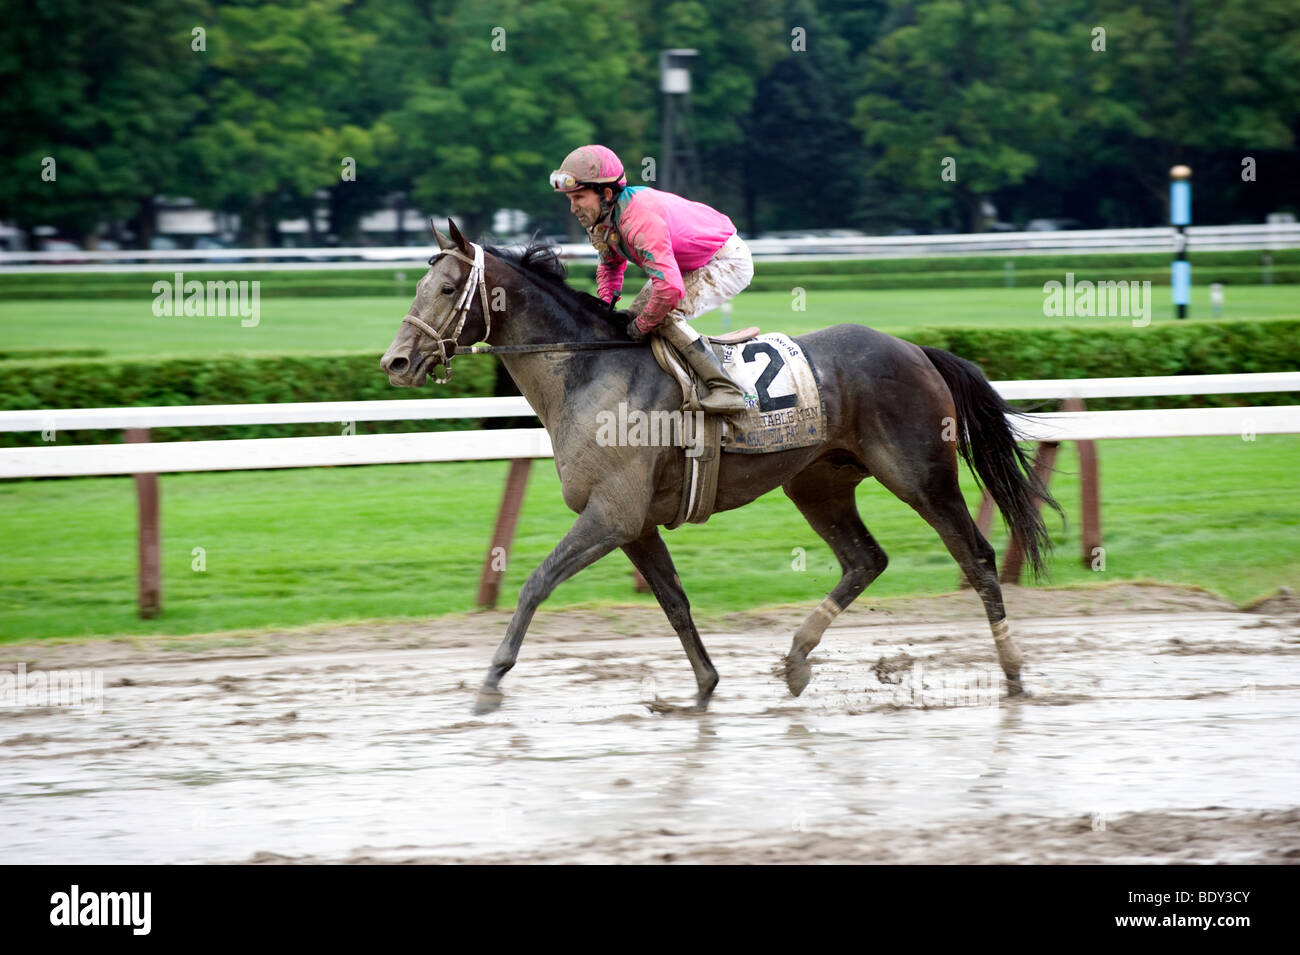 Ramon Dominguez on Charitable Man at Travers 2009 - Stock Image